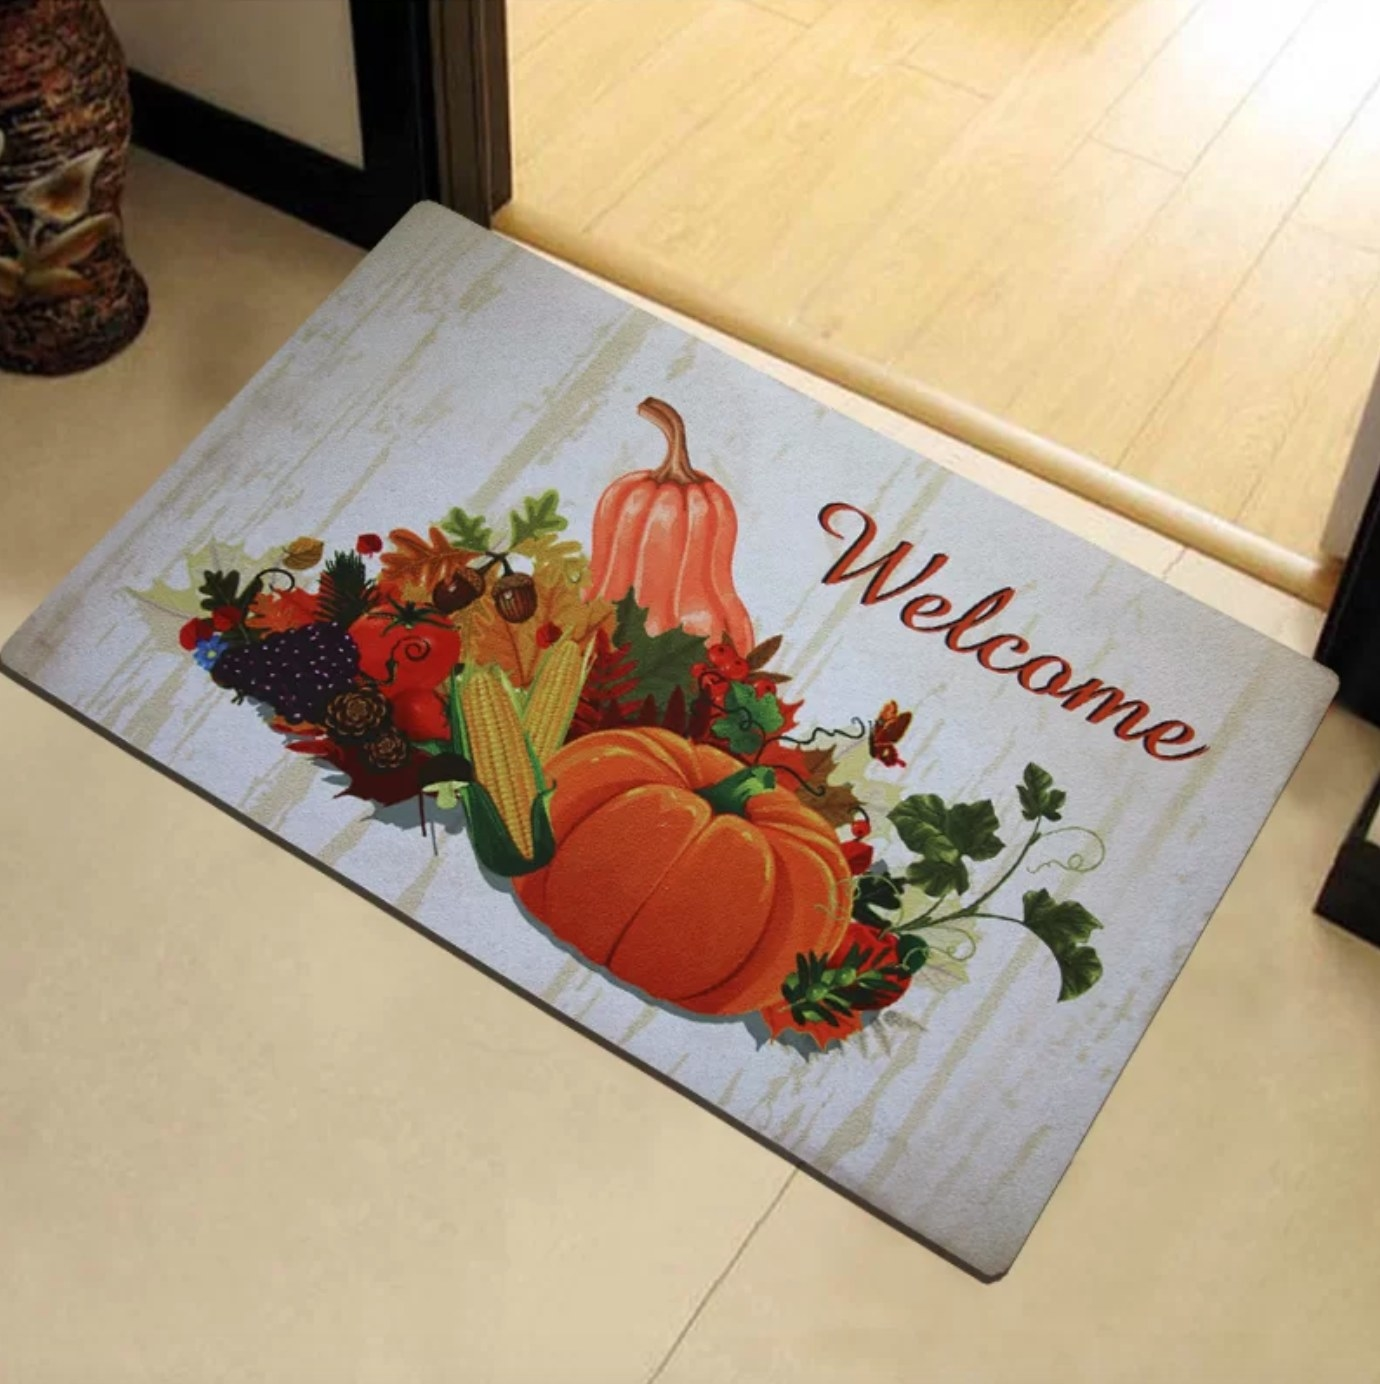 The nonslip outdoor doormat featuring fall vegetables and colorful leaves